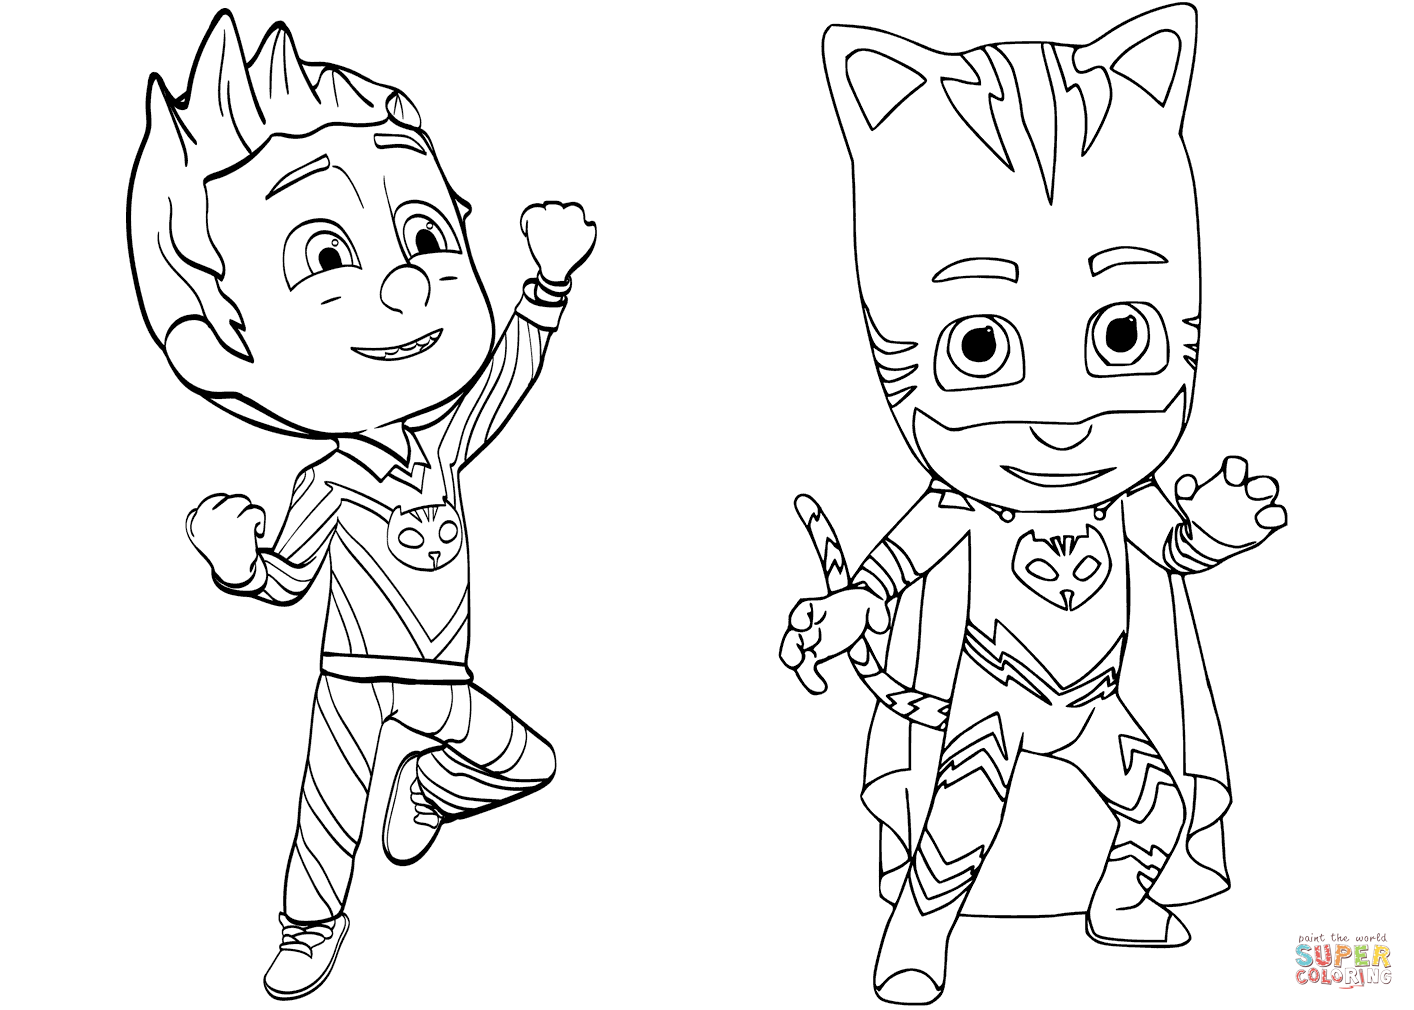 pajama-hero-connor-is-catboy-from-pj-masks-coloring-pagepj-masks-to-colour-